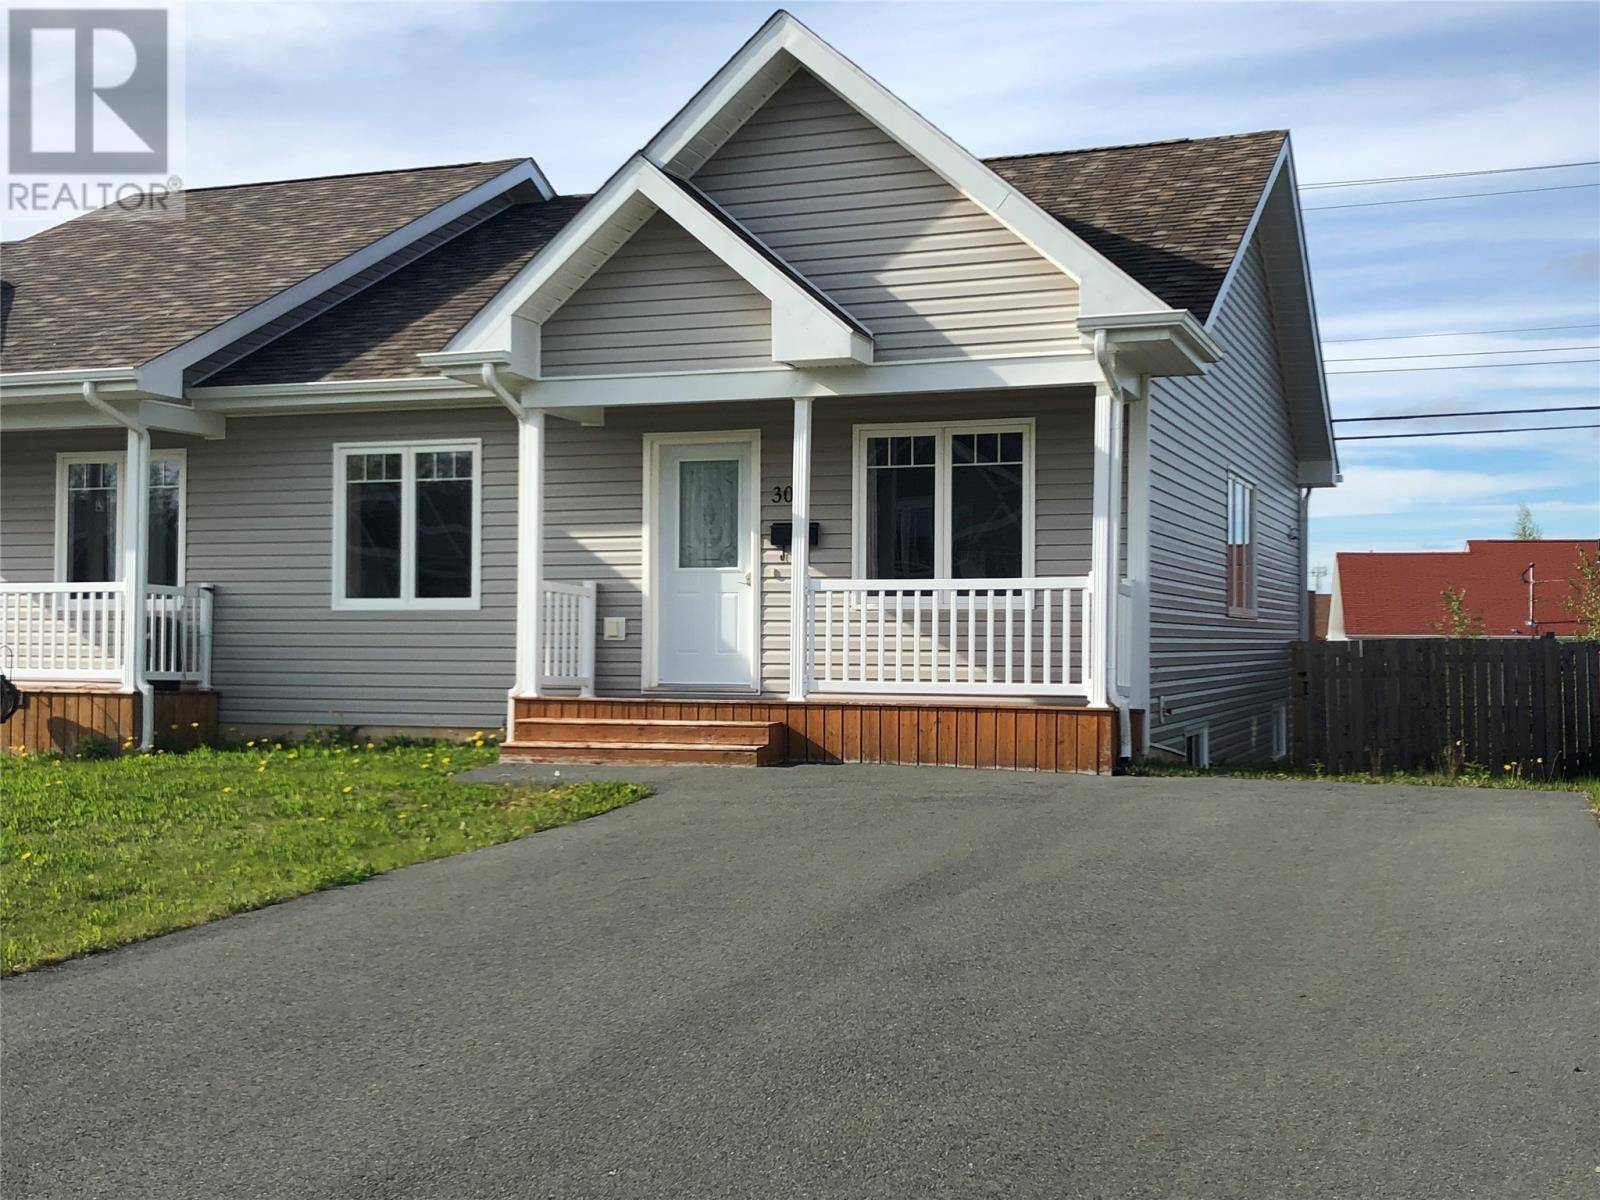 House for sale at 30 Yeager St Gander Newfoundland - MLS: 1192216